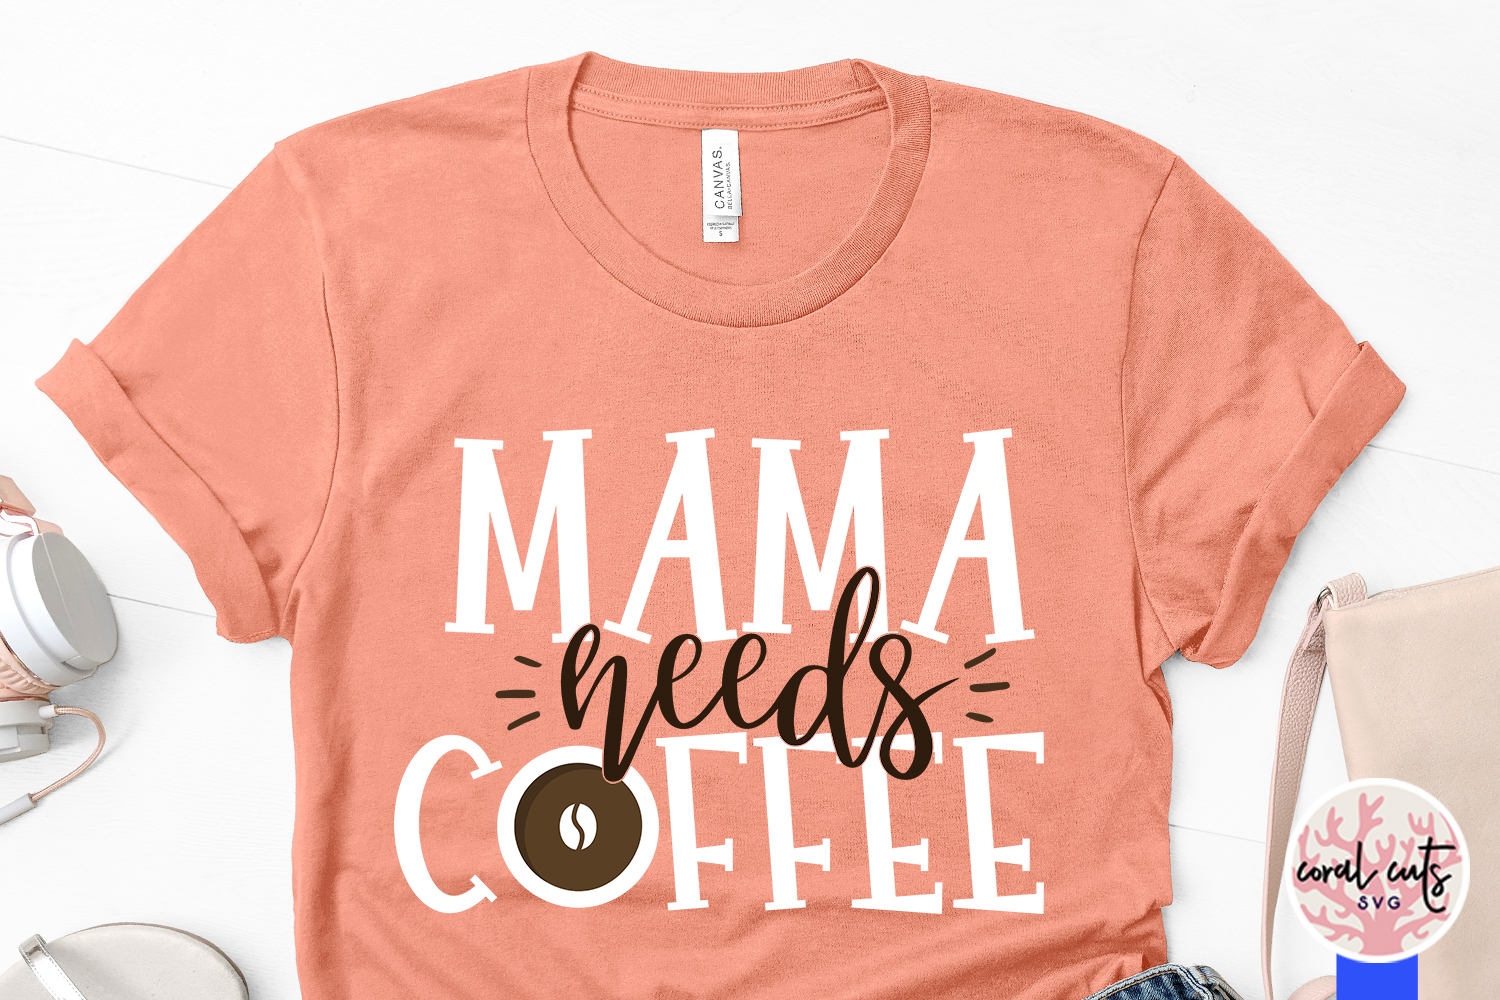 Mama needs a coffee - Mother SVG EPS DXF PNG Cutting File example image 3